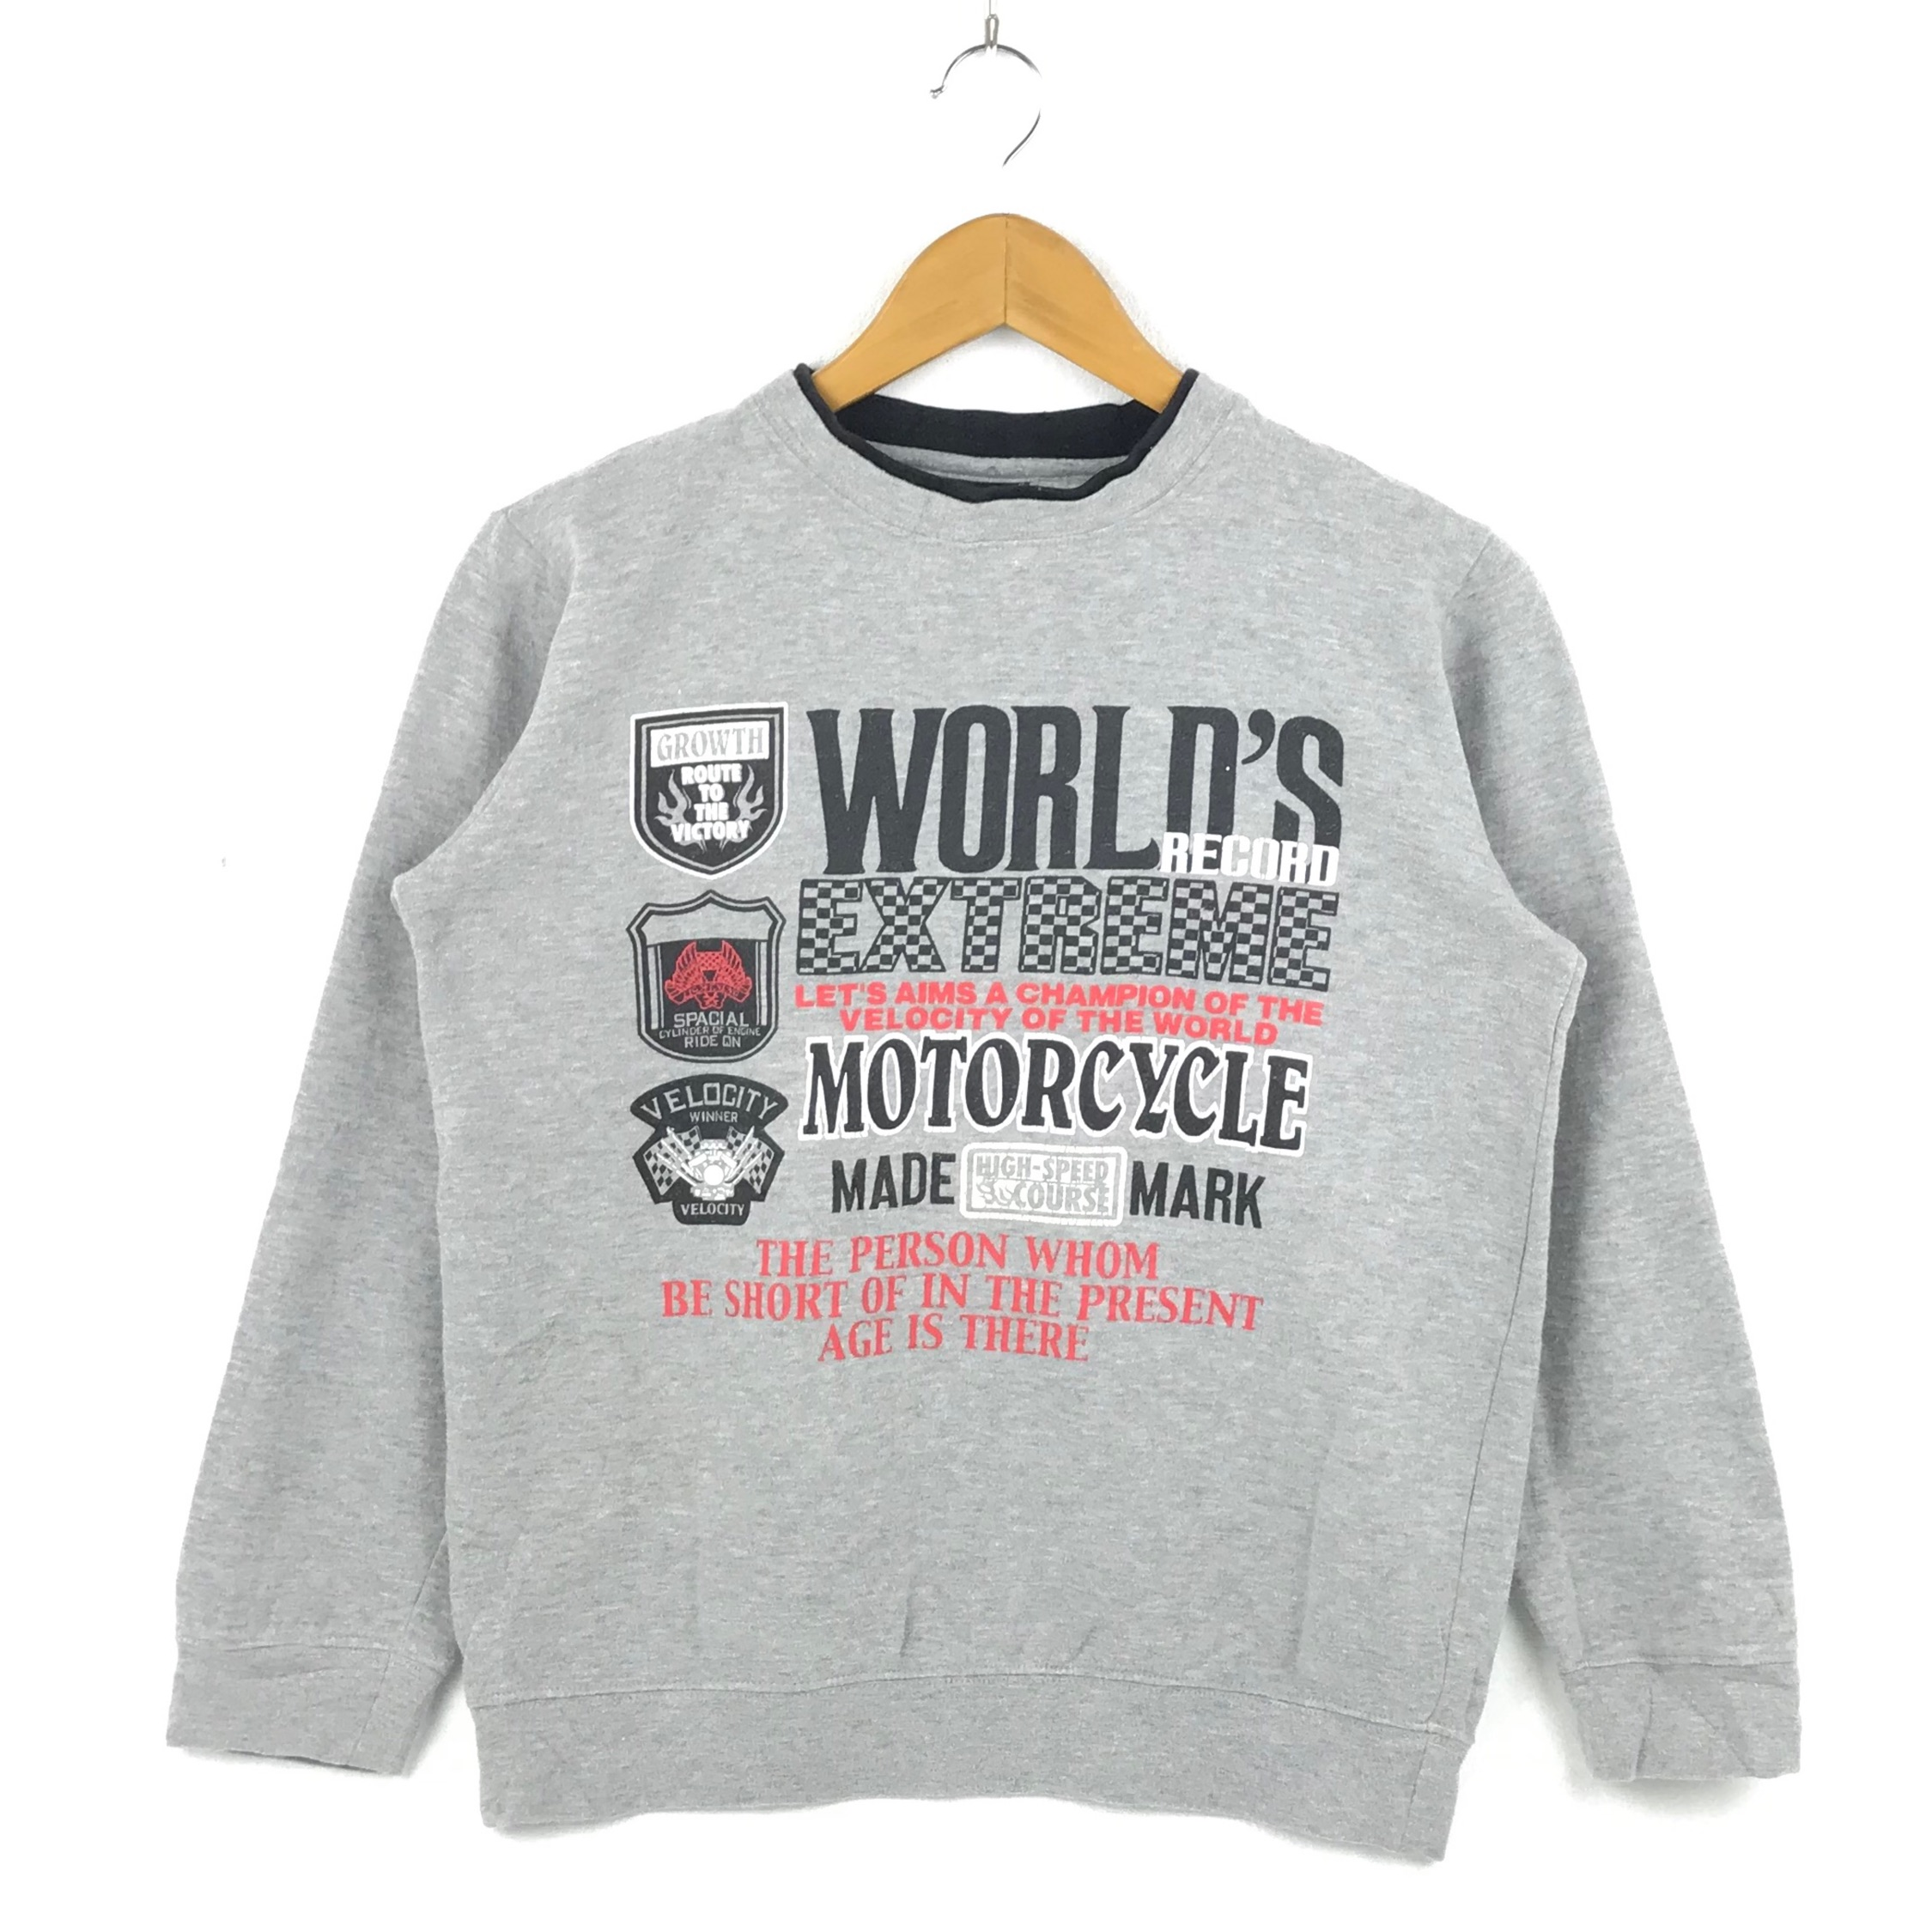 Vintage Motorcycle Sweatshirt Motorsports Fashion